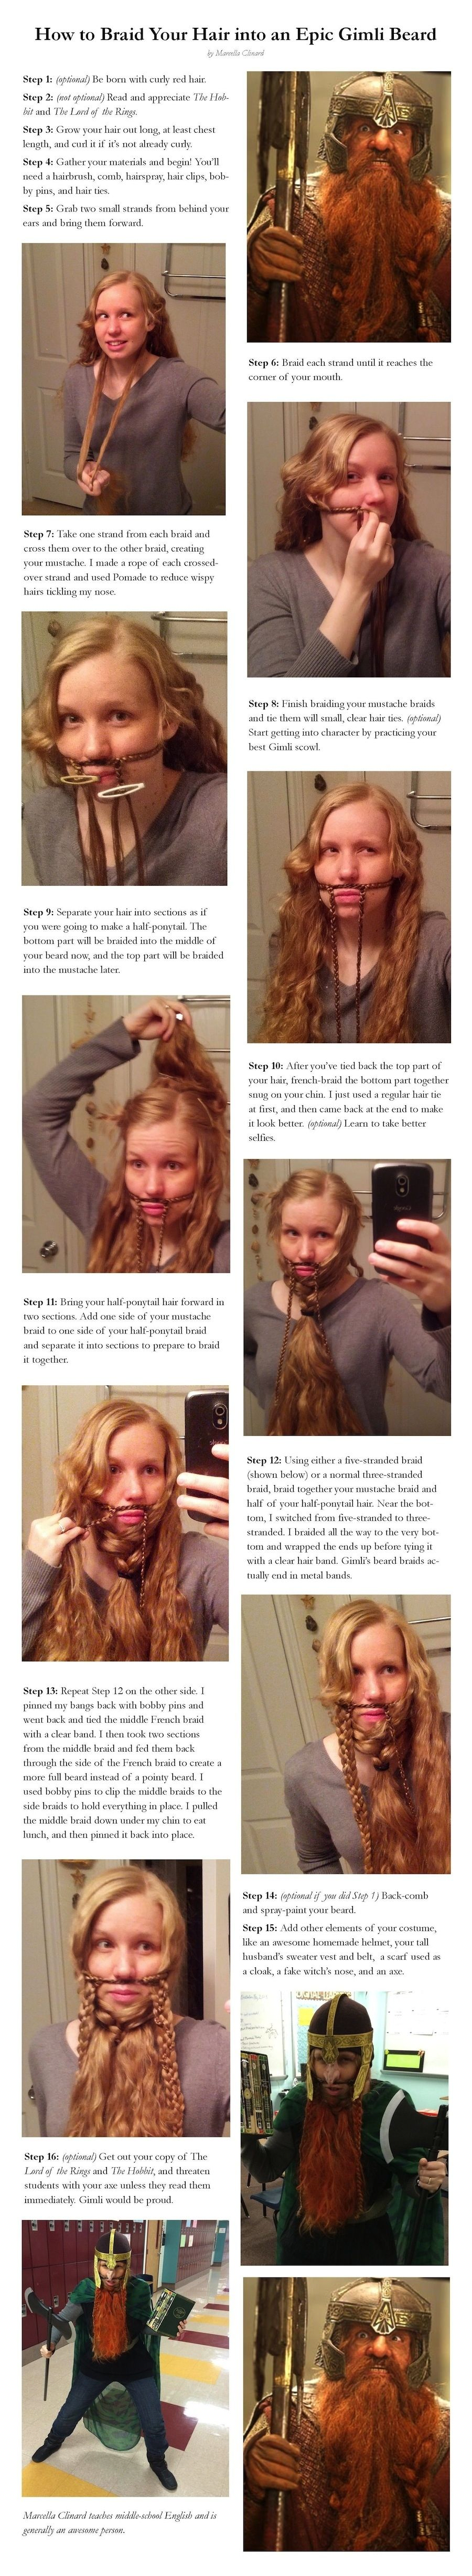 This Is How To Braid Your Hair Into A Gimli Beard Funny